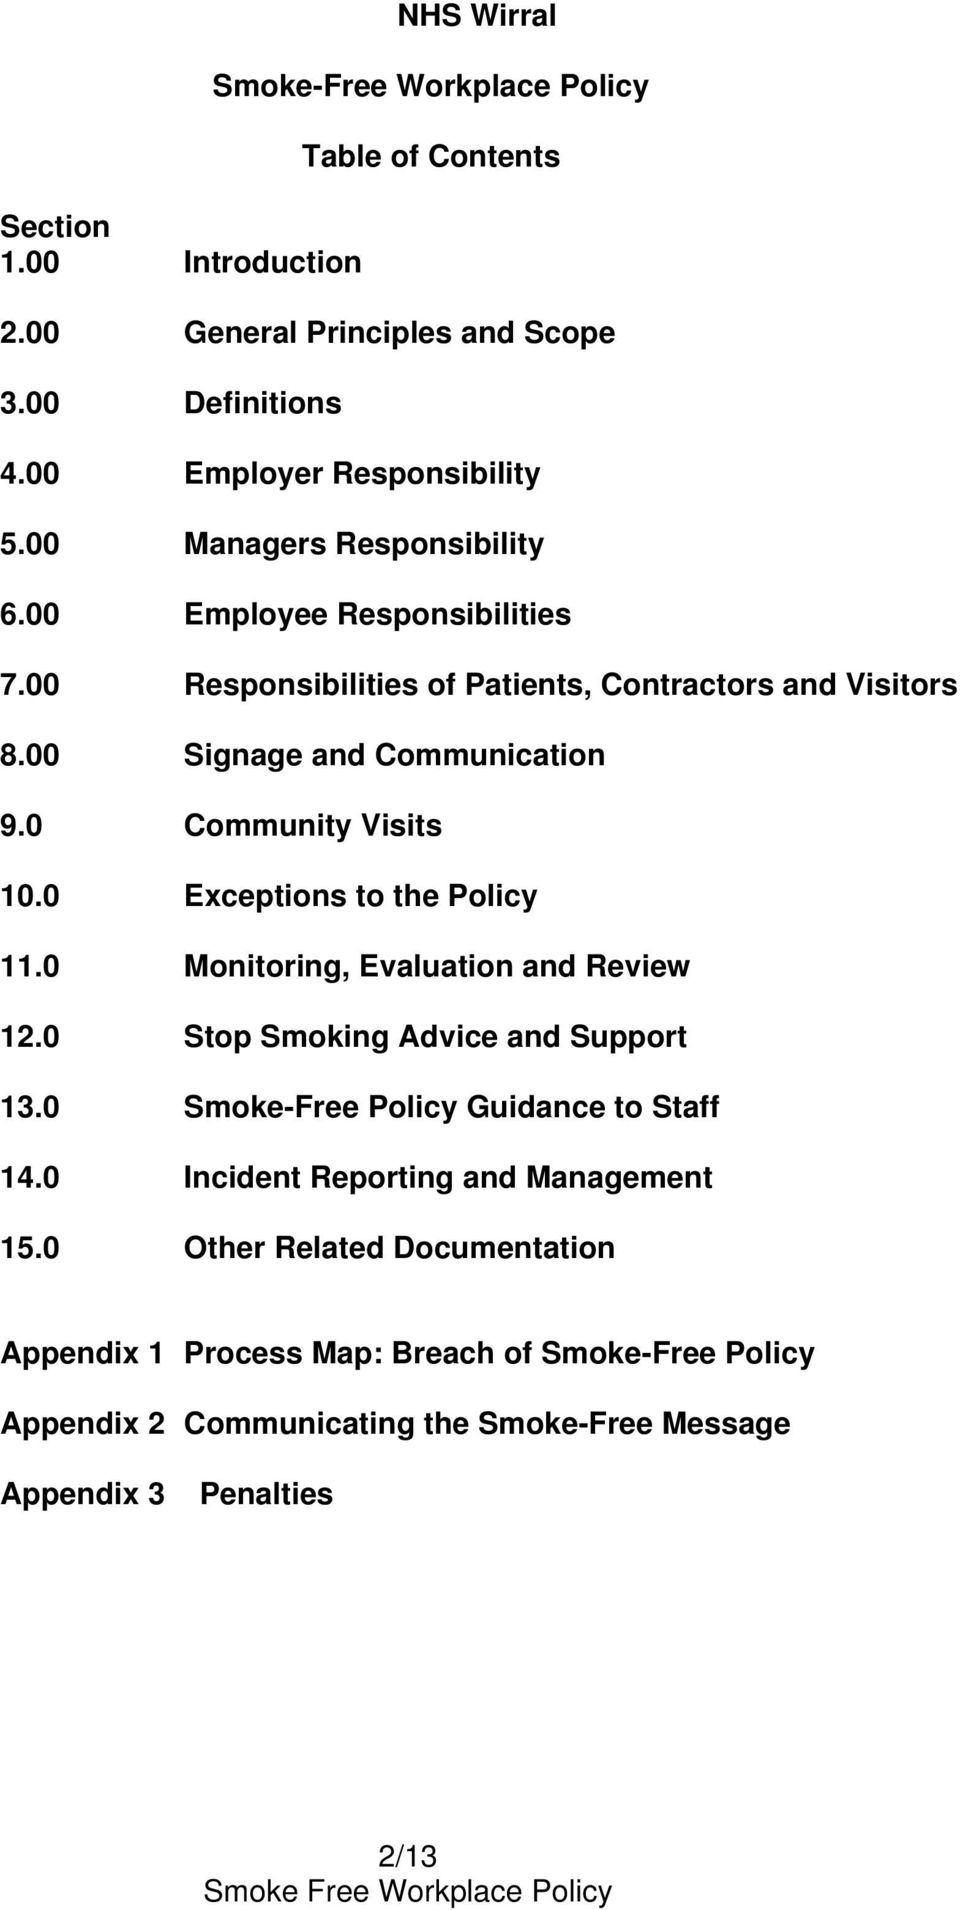 0 Community Visits 10.0 Exceptions to the Policy 11.0 Monitoring, Evaluation and Review 12.0 Stop Smoking Advice and Support 13.0 Smoke-Free Policy Guidance to Staff 14.